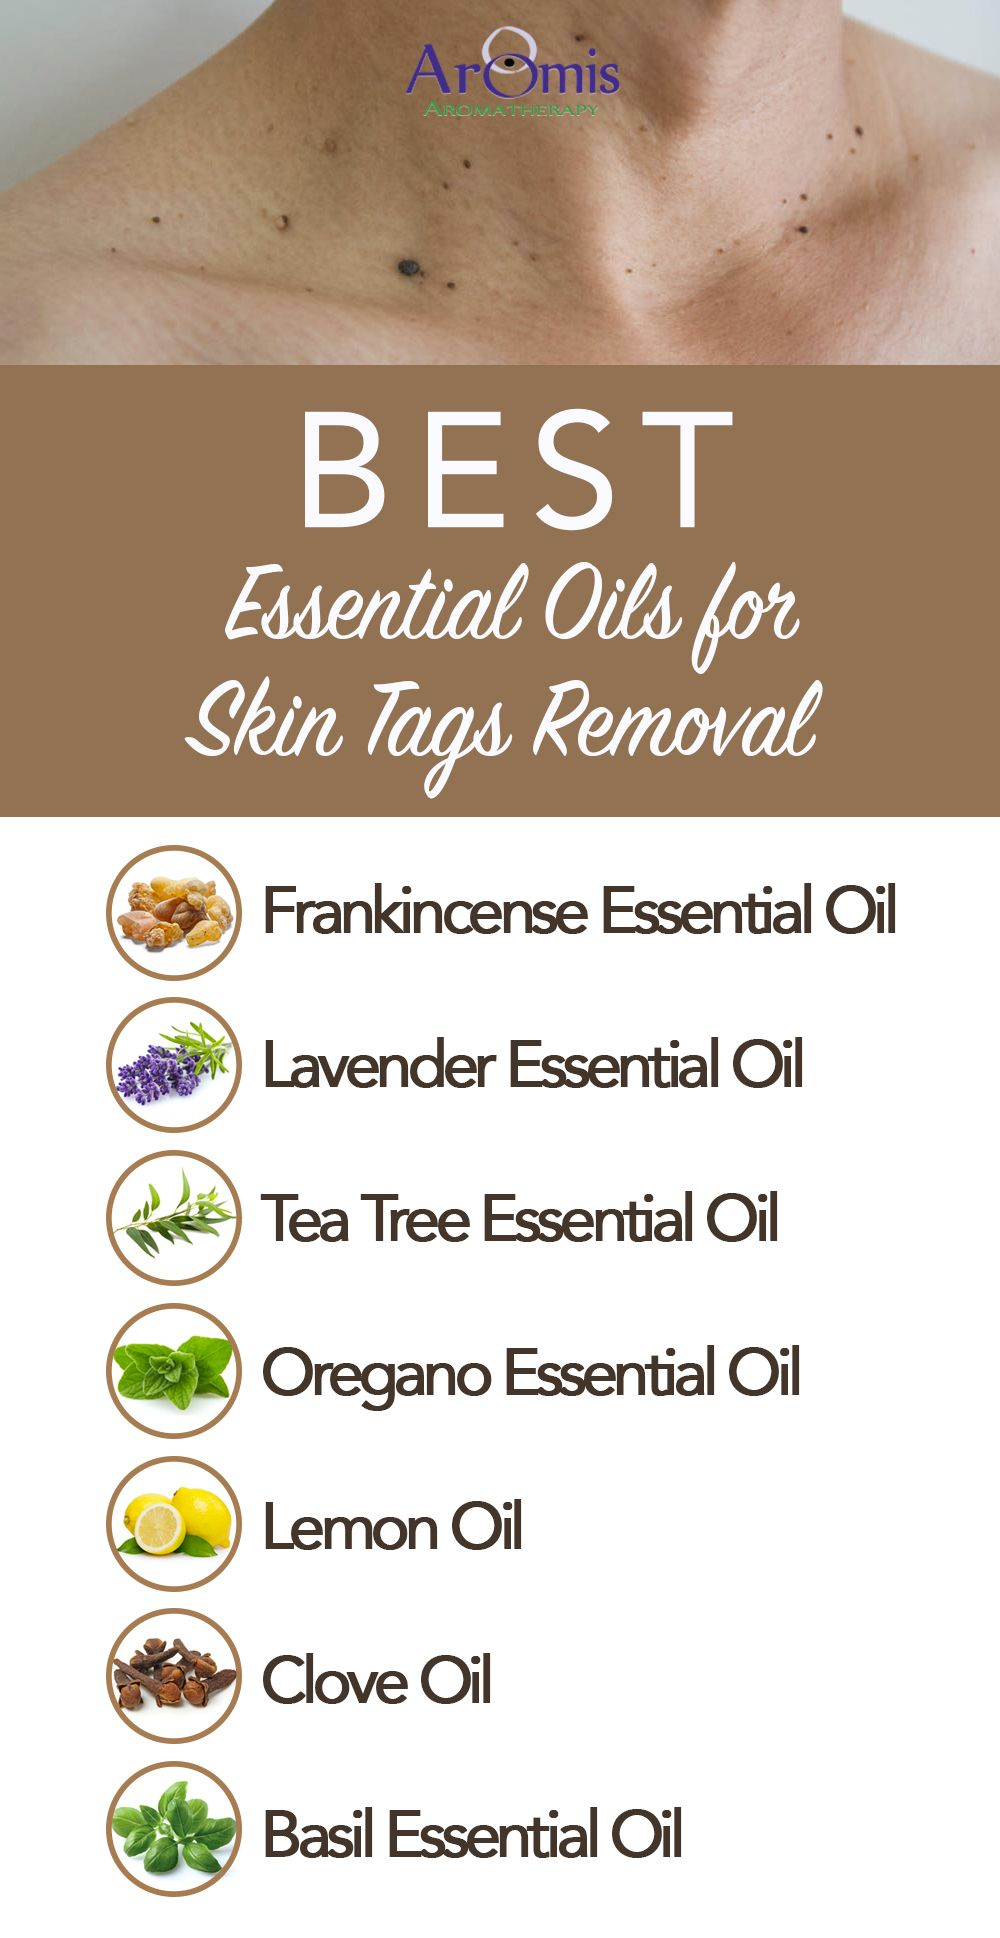 Best Essential Oils for Skin Tags Removal   Skin tag removal, Skin ...